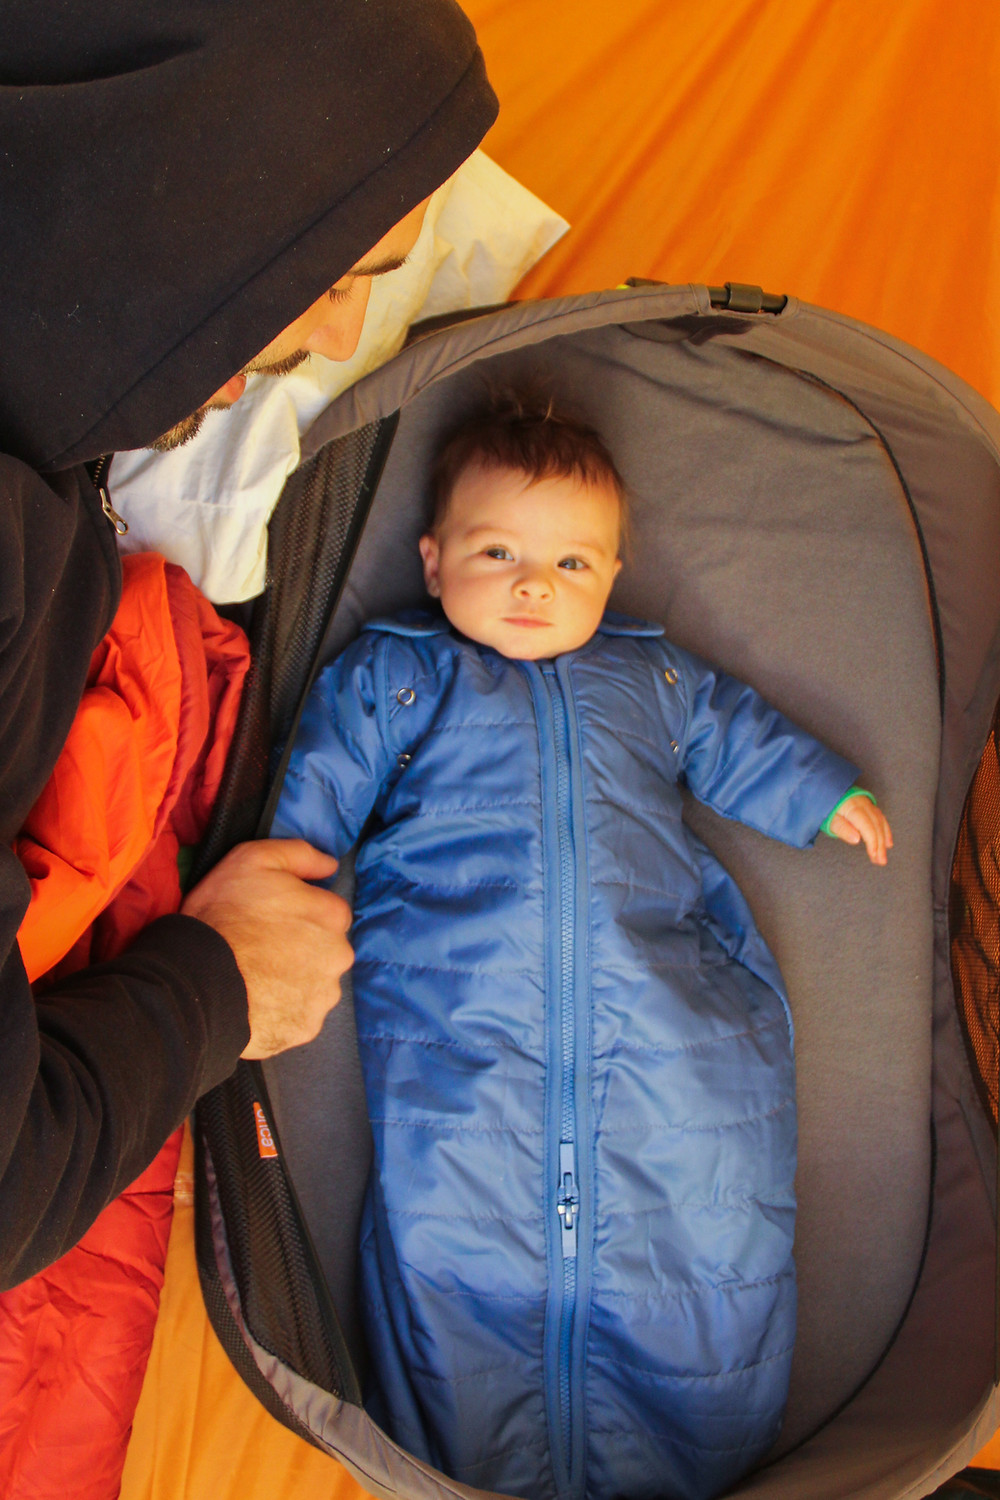 Our baby in a warm sleeping bag made for infants while camping